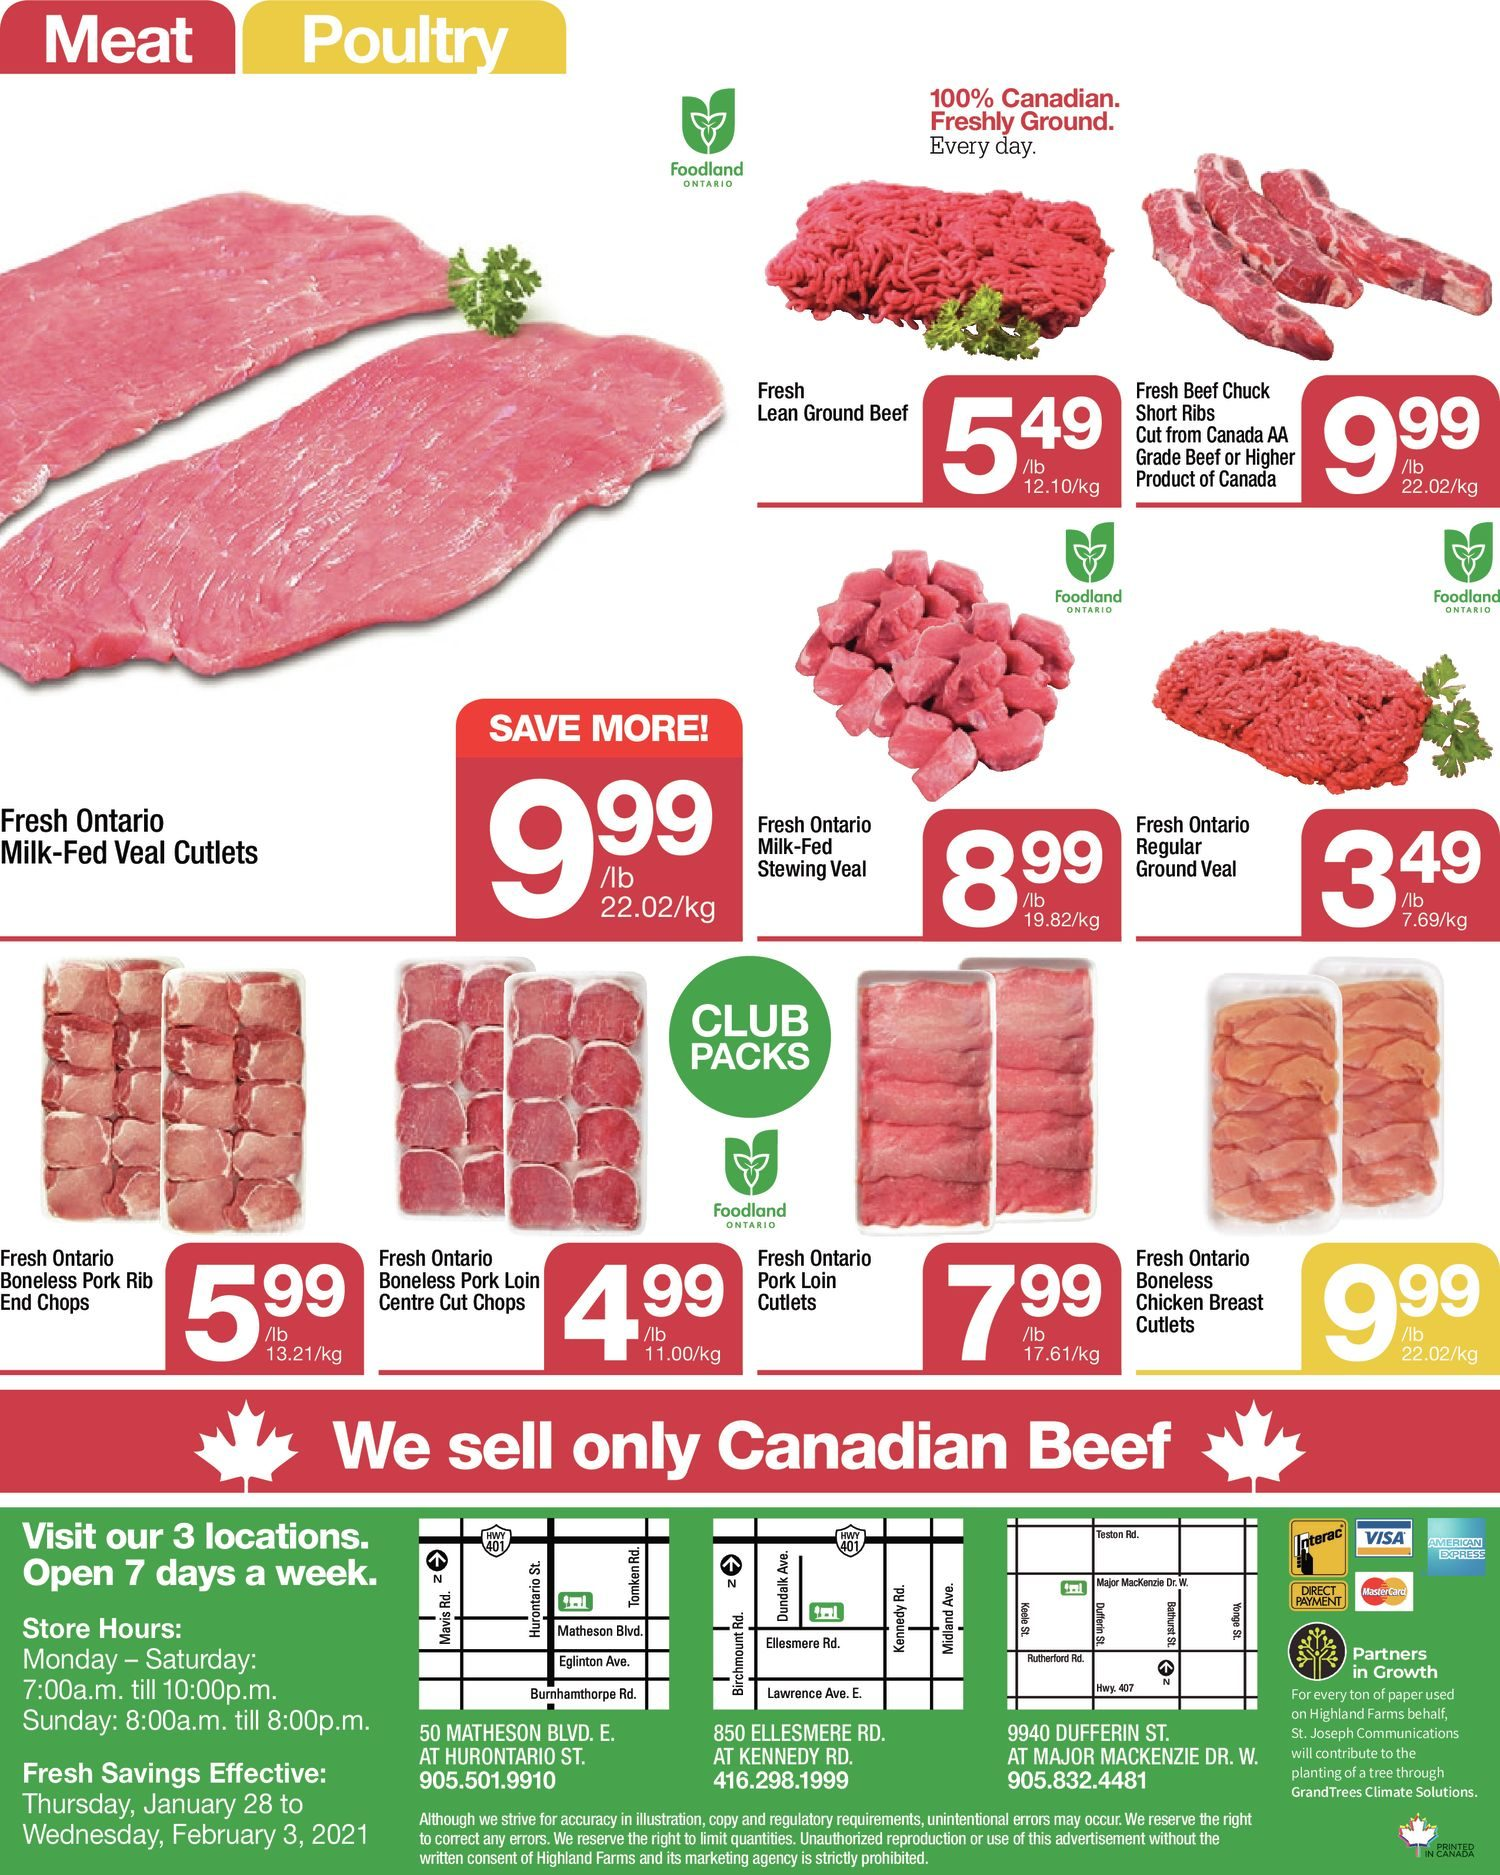 Highland Farms - Weekly Flyer Specials - Start Fresh - Page 8